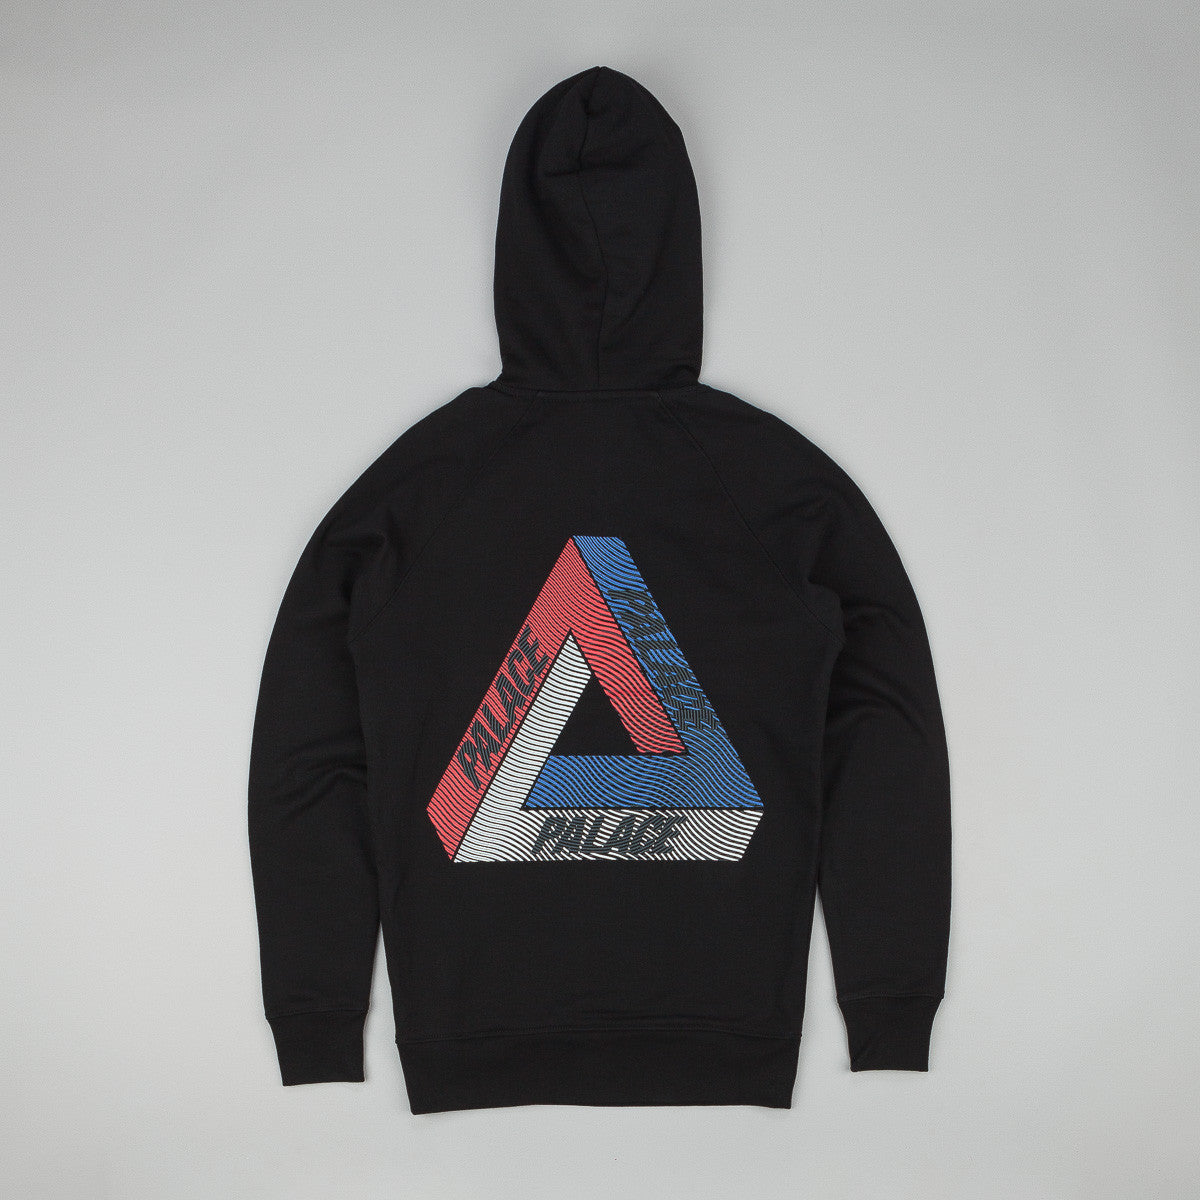 Palace Drury Brit Hooded Sweatshirt - Black